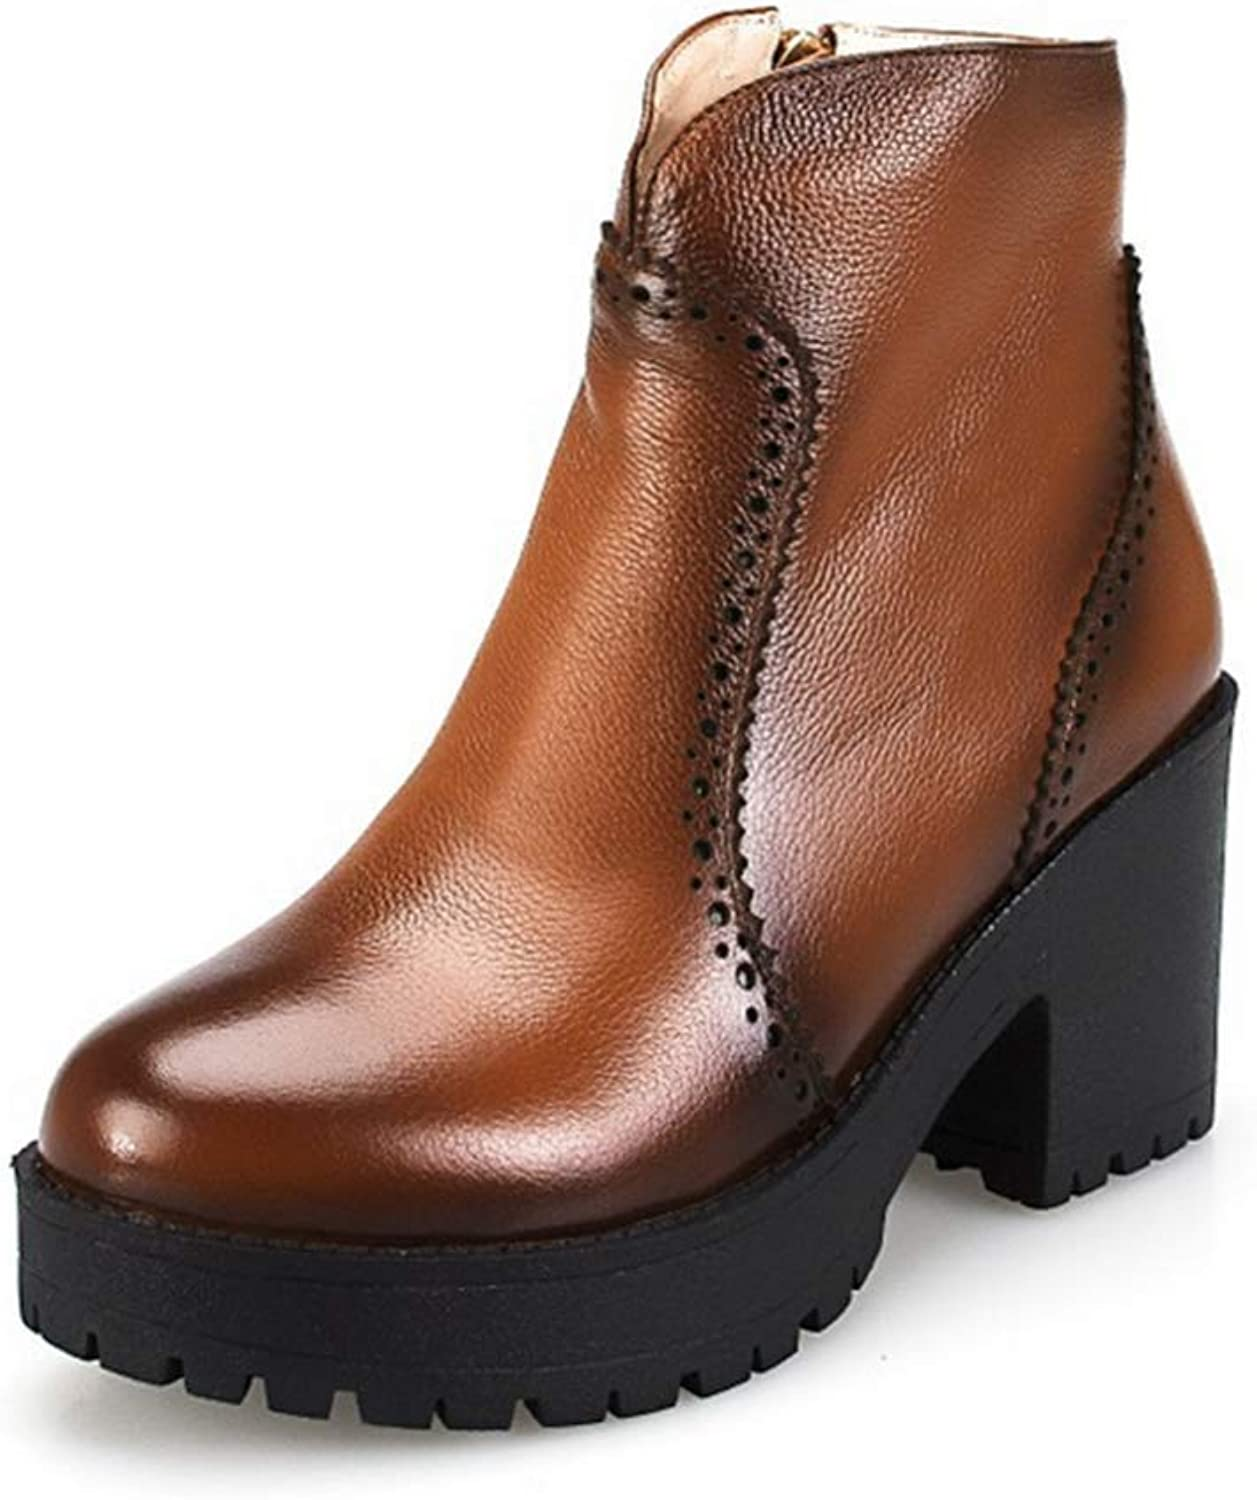 Shiney Women's Genuine Leather Ankle Boots color Leather Low Tube Martin Boots Fall Winter